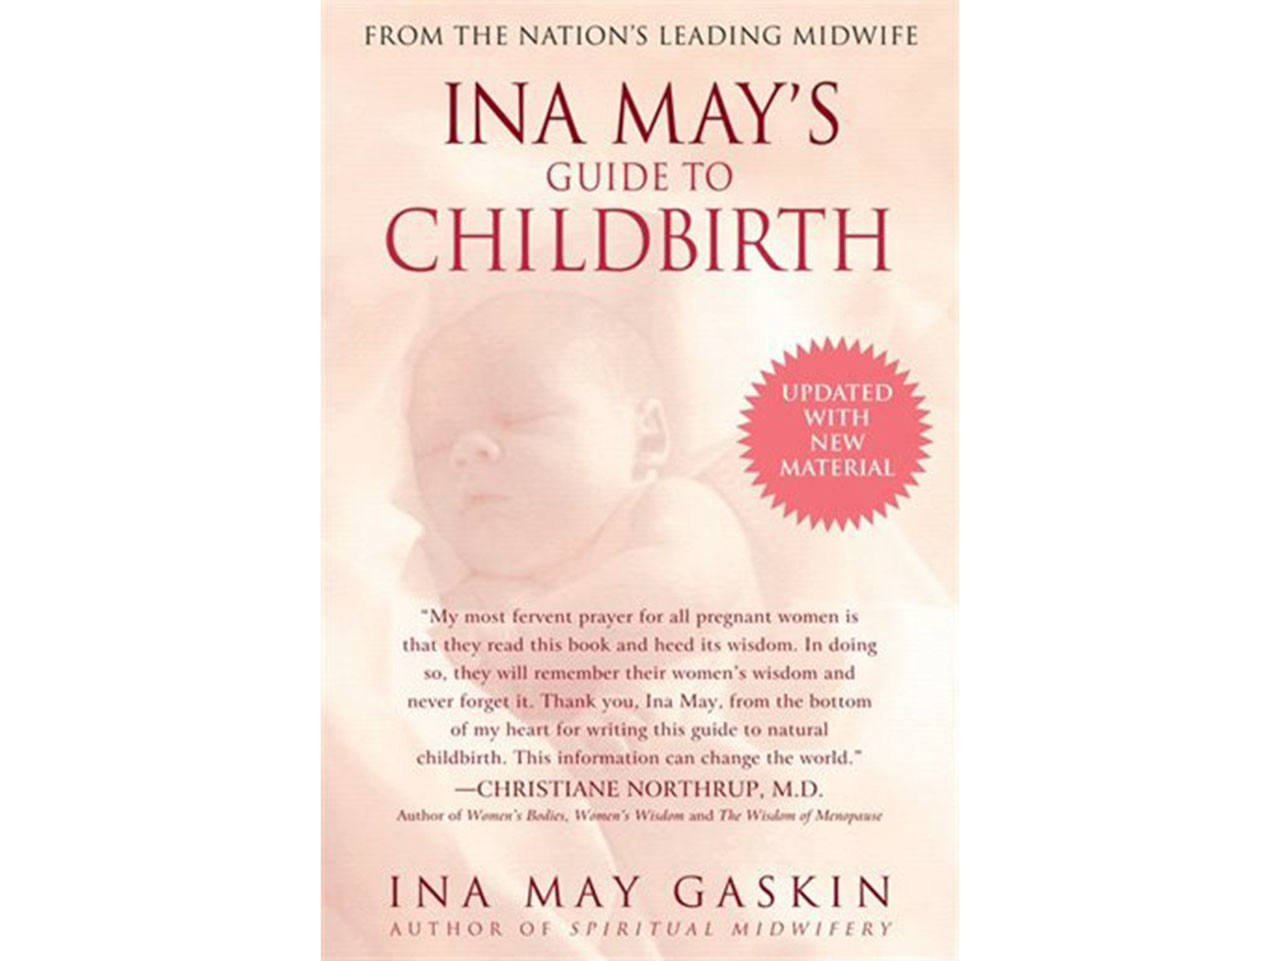 Cover of the pregnancy book Ina May's Guide to Childbirth